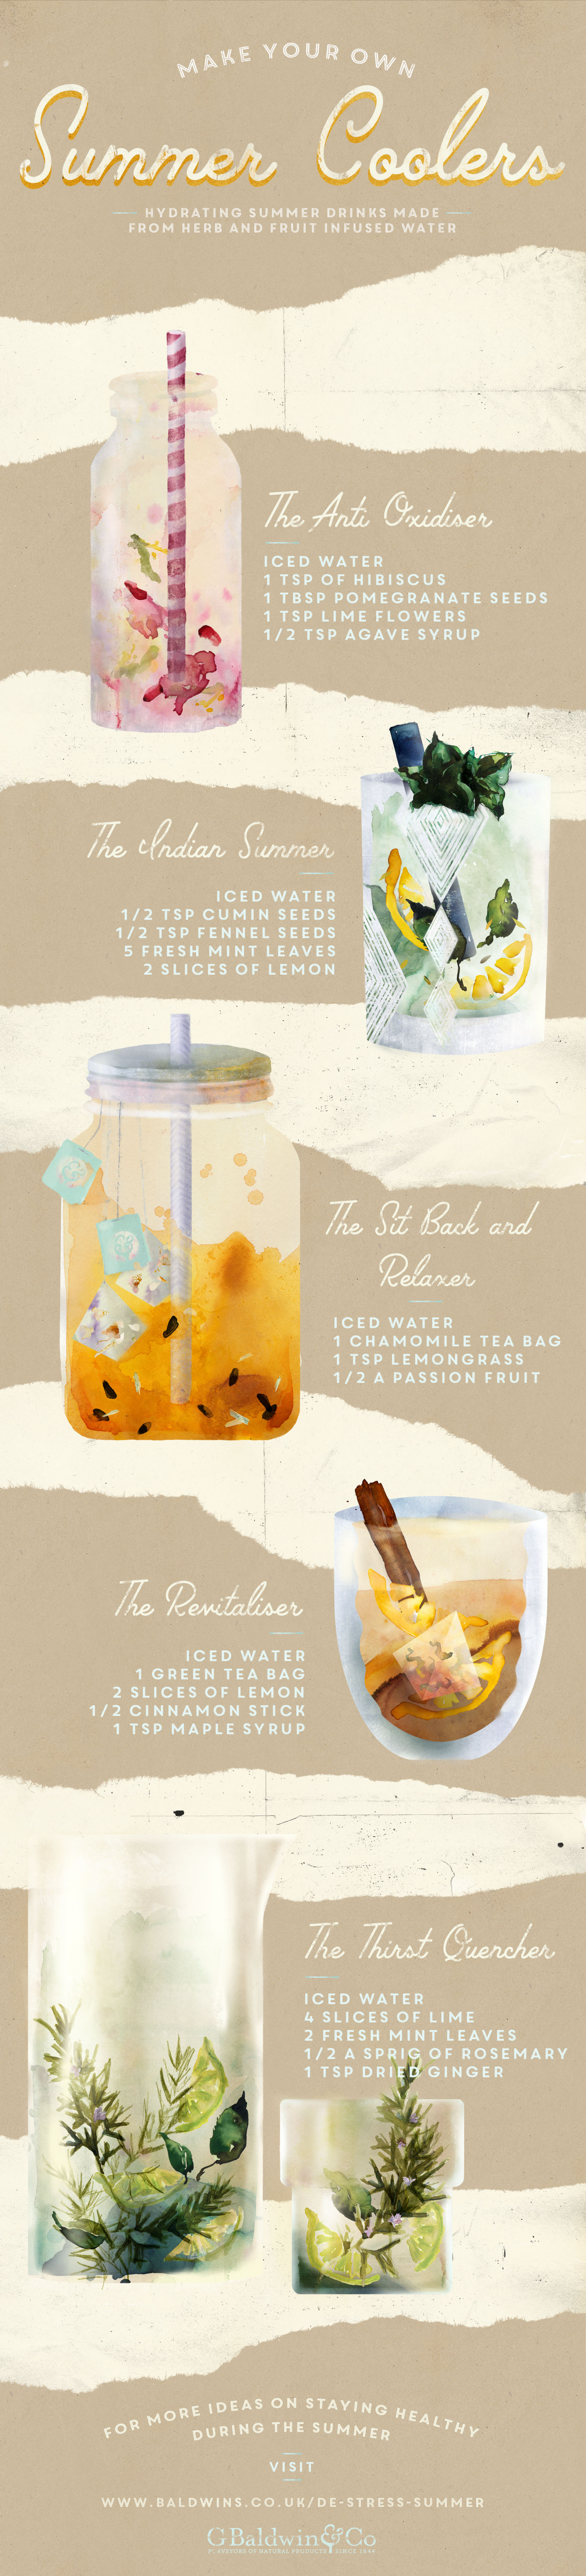 The Best Summer Detox Water Recipes Infographic